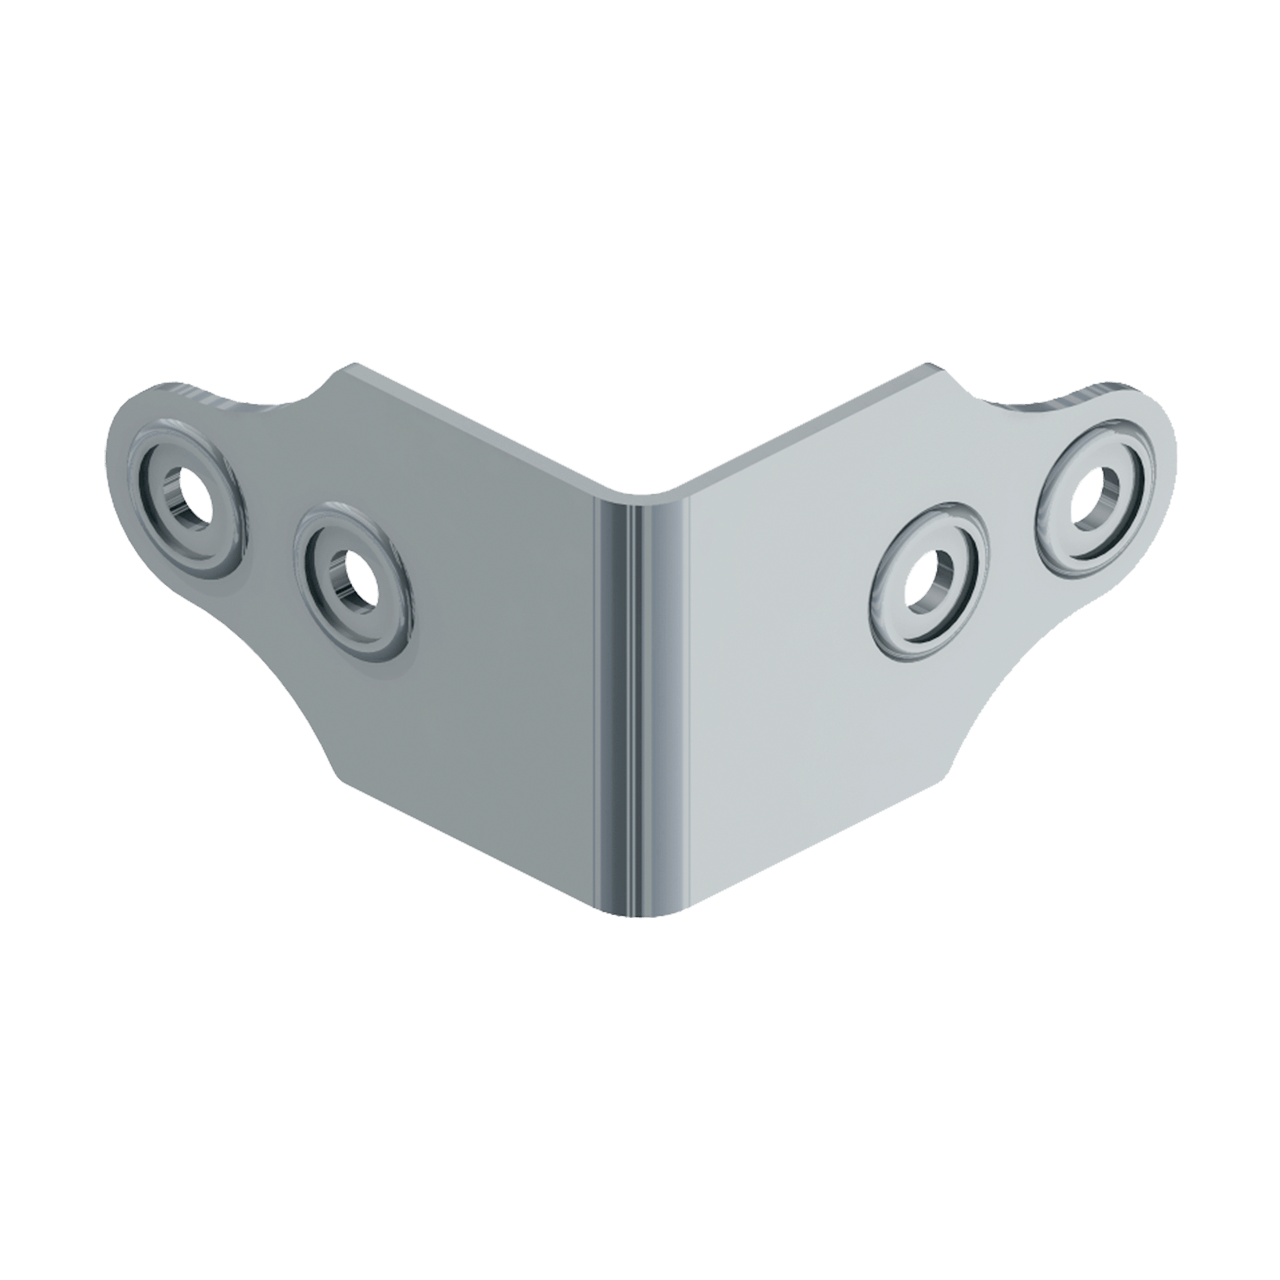 Four-Hole Clamp With Rivet Protectors, 3/4 view